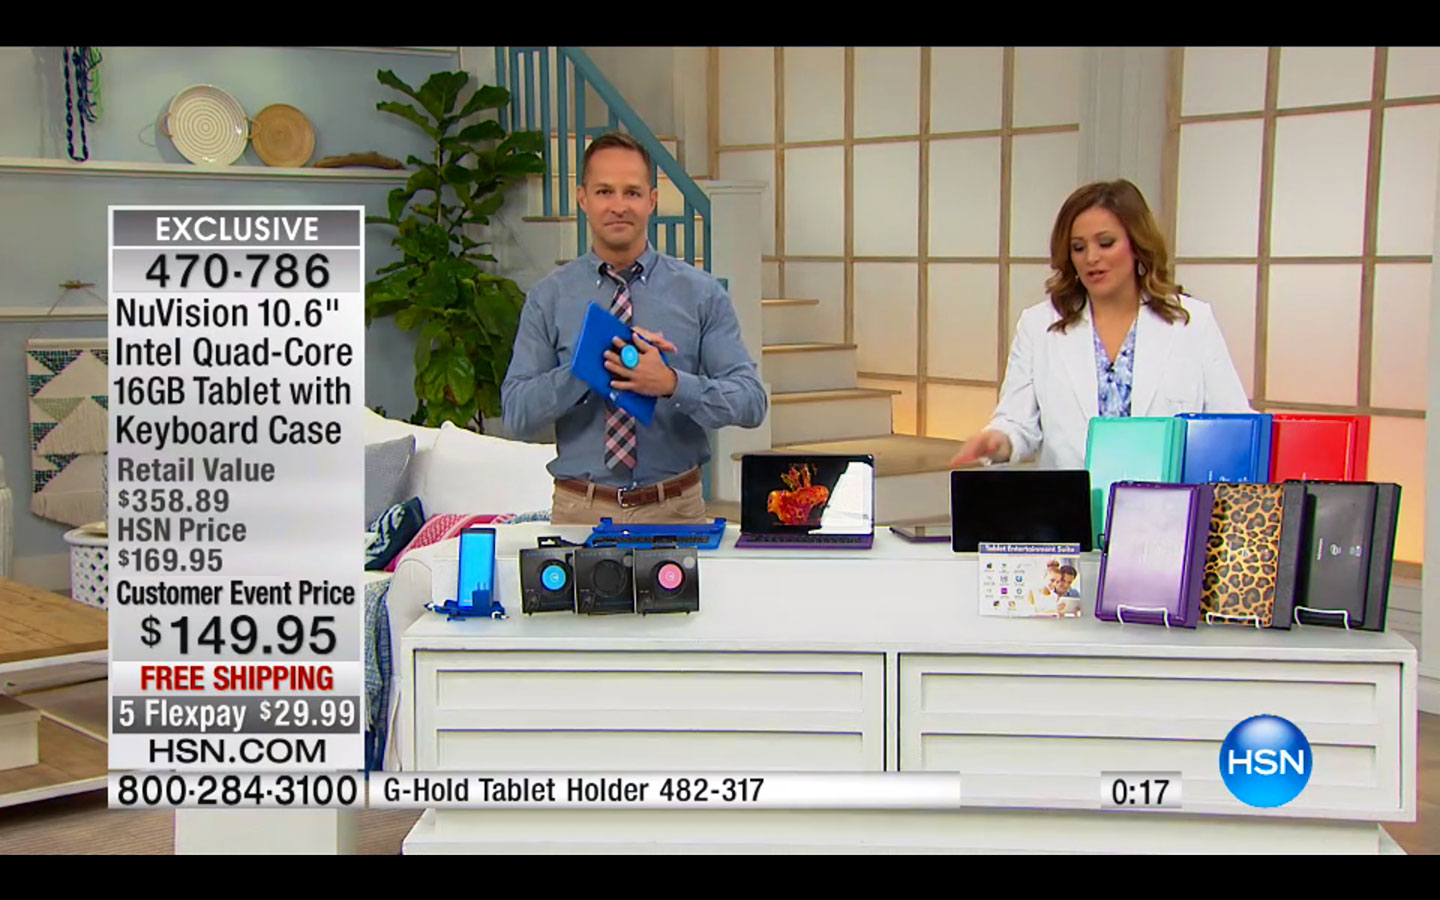 G Hold Safetray S Sister Product Appears On The Home Shopping Network Safetray Products Ltd